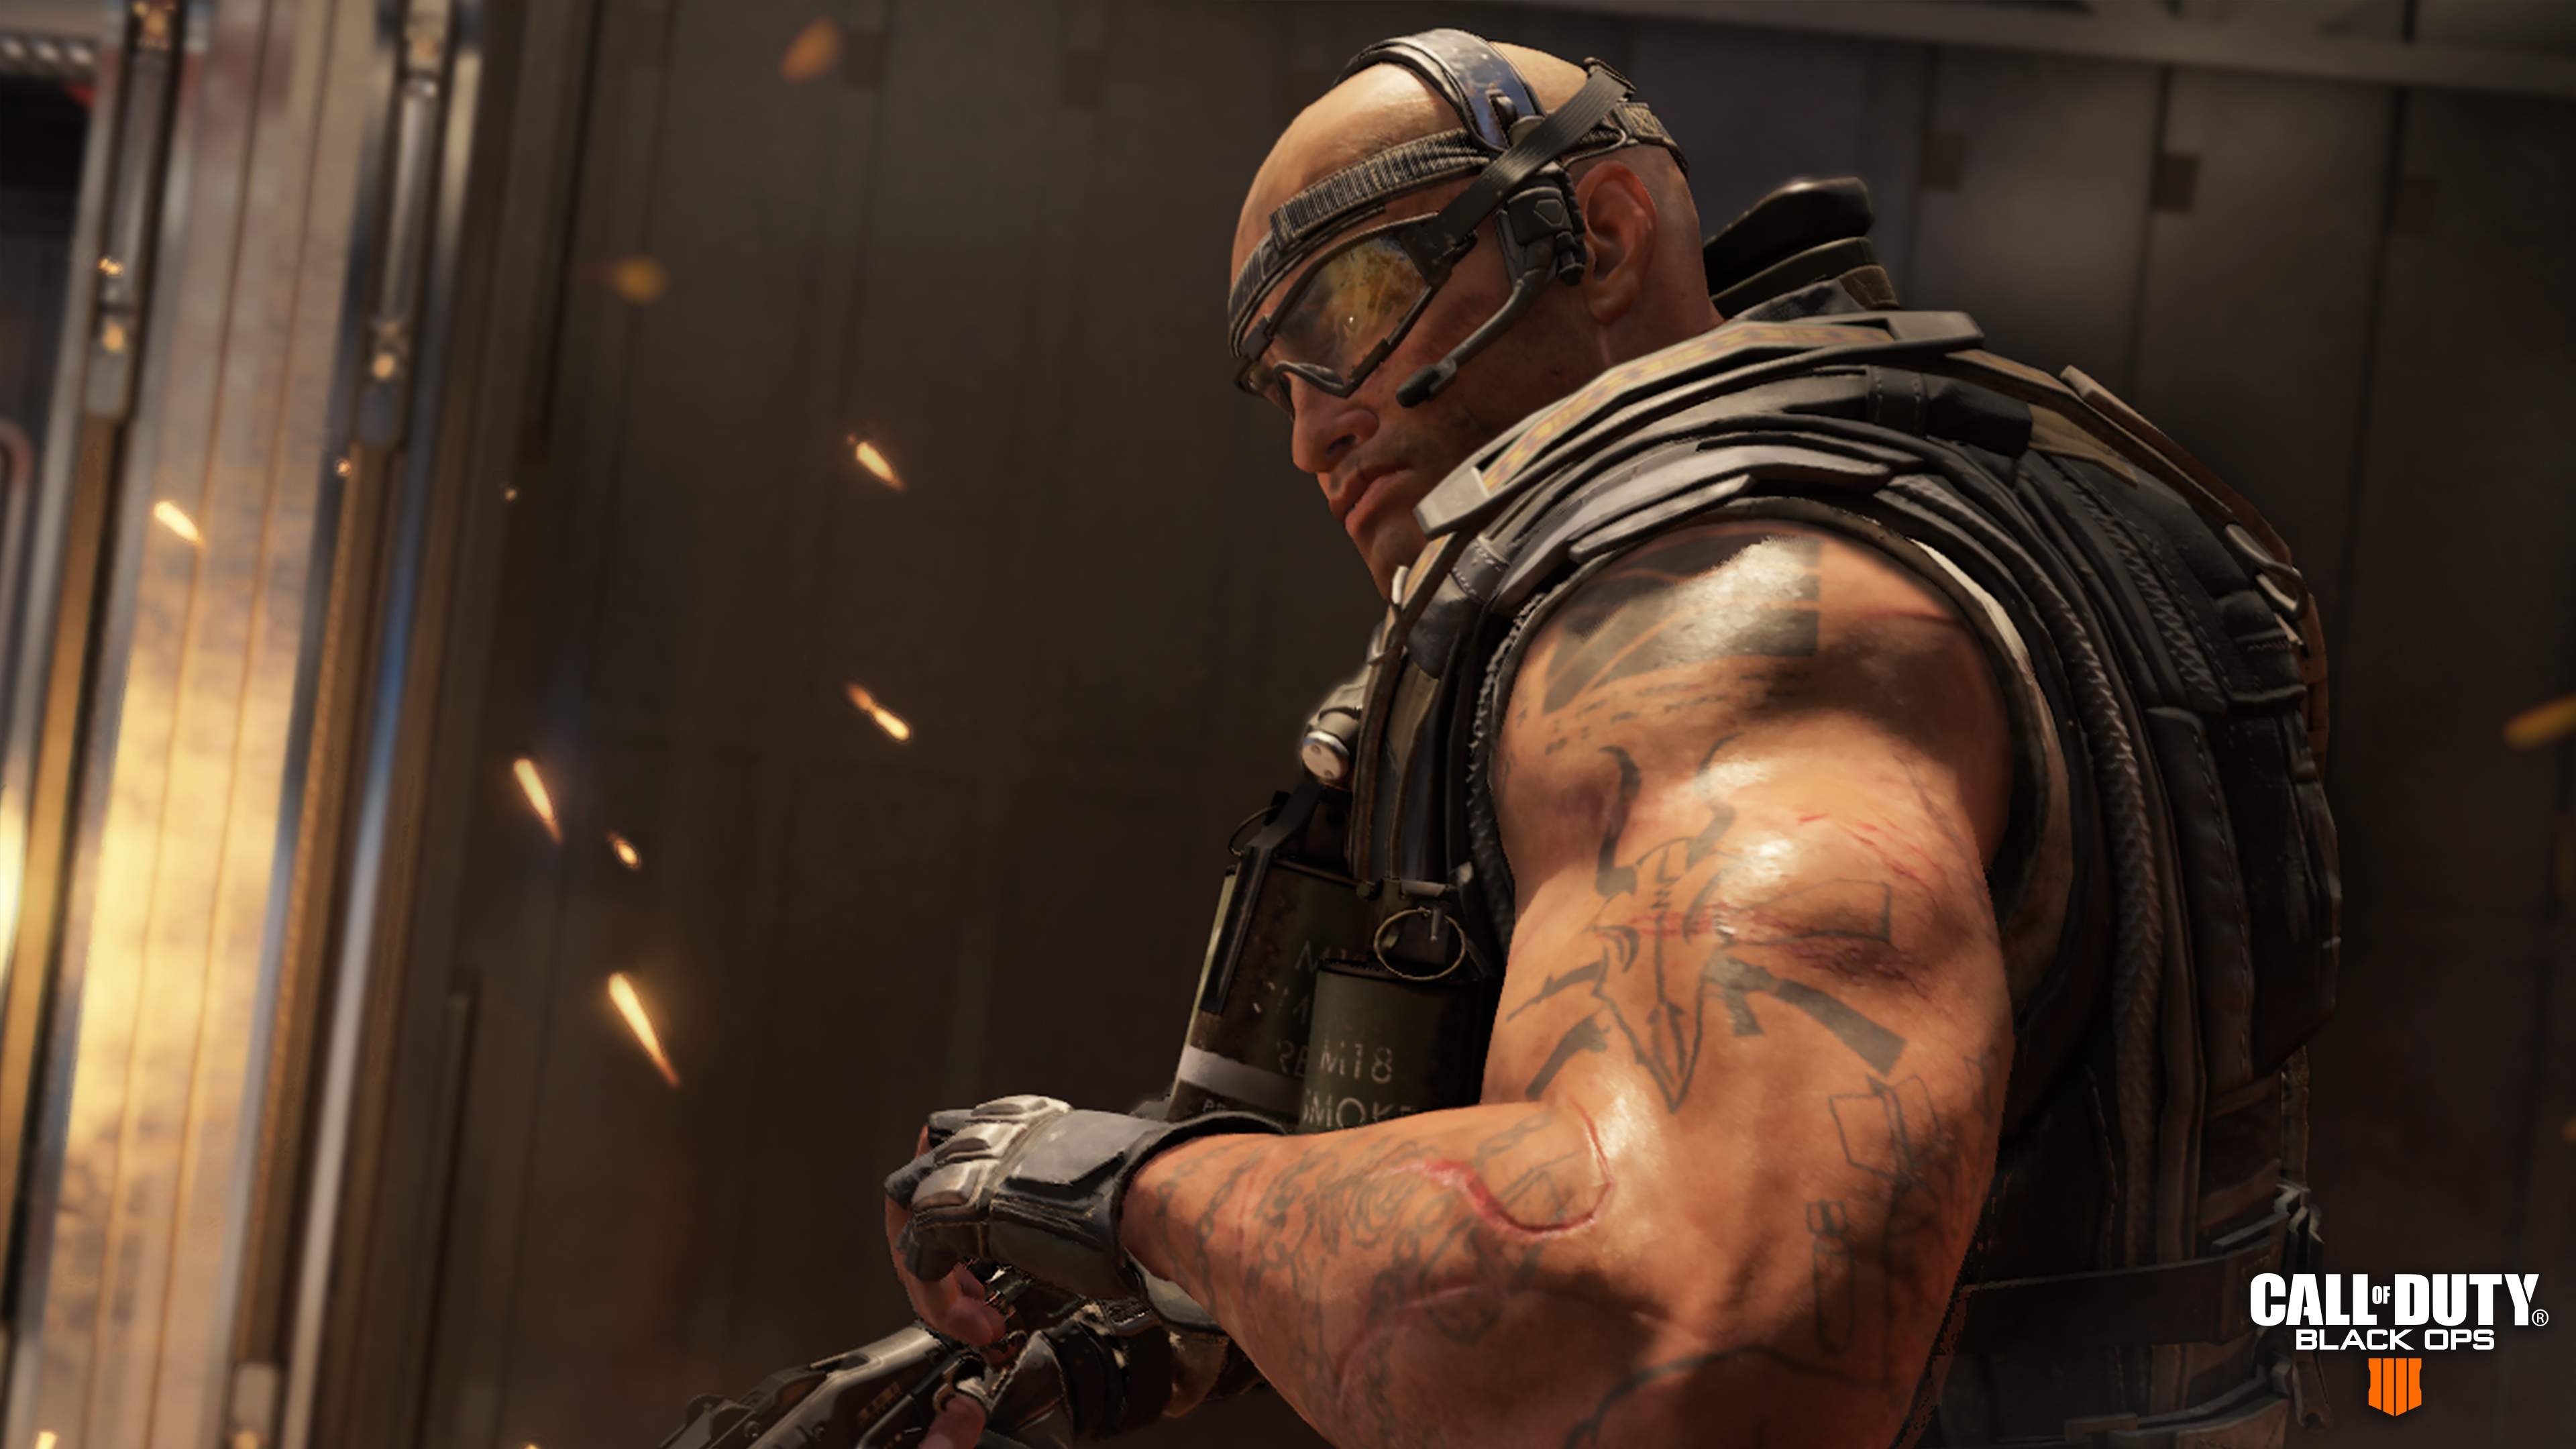 Call Of Duty Black Ops 4 Features Frenetic Multiplayer Mode